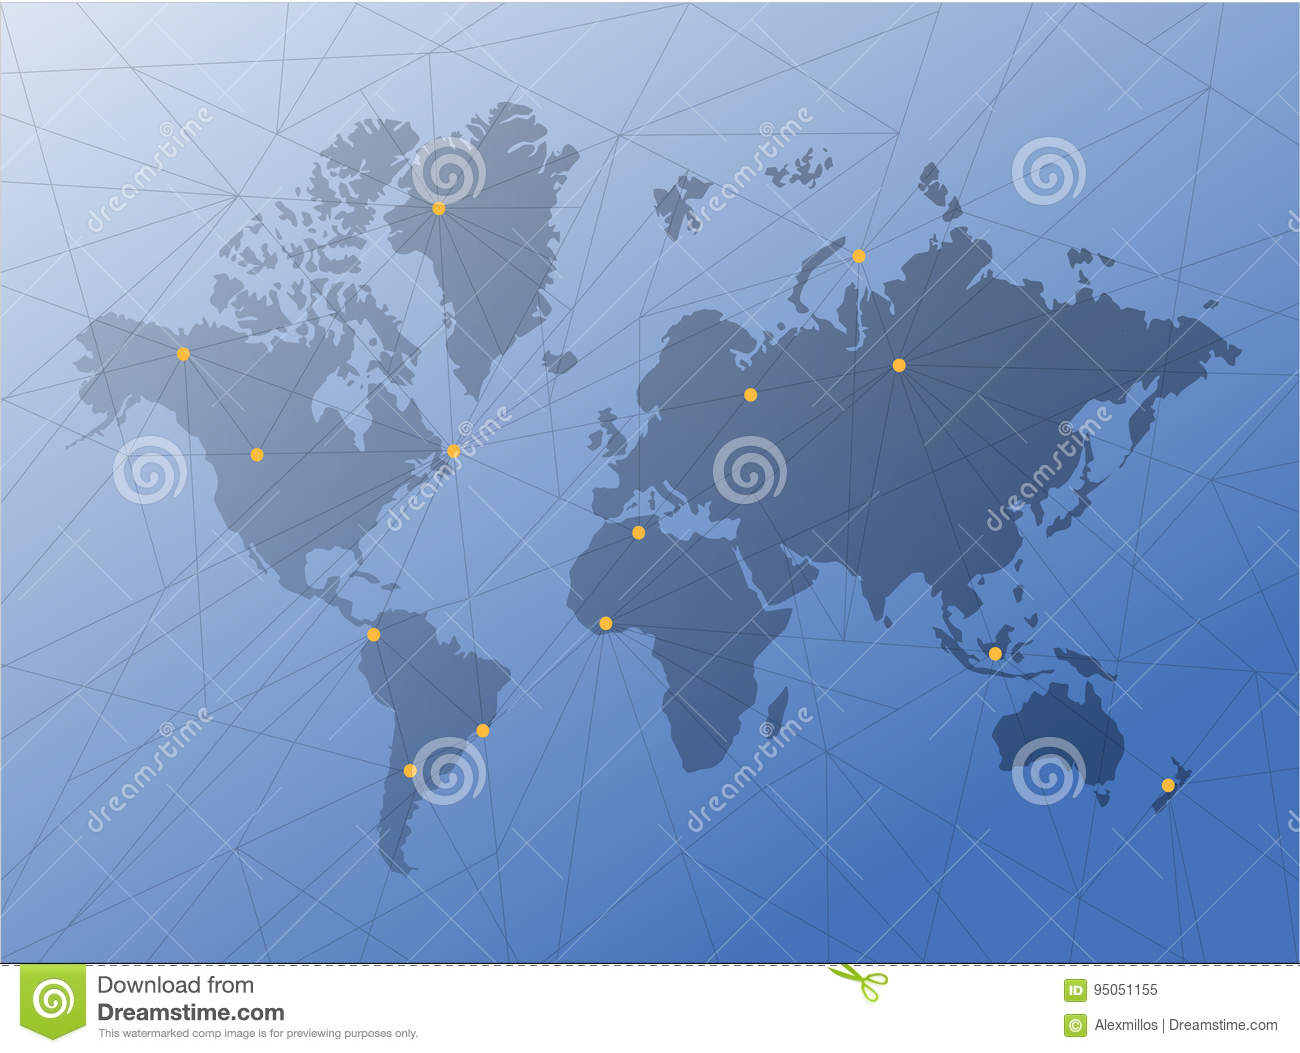 World map technology network diagram link stock illustration world map technology network diagram link royalty free illustration gumiabroncs Image collections